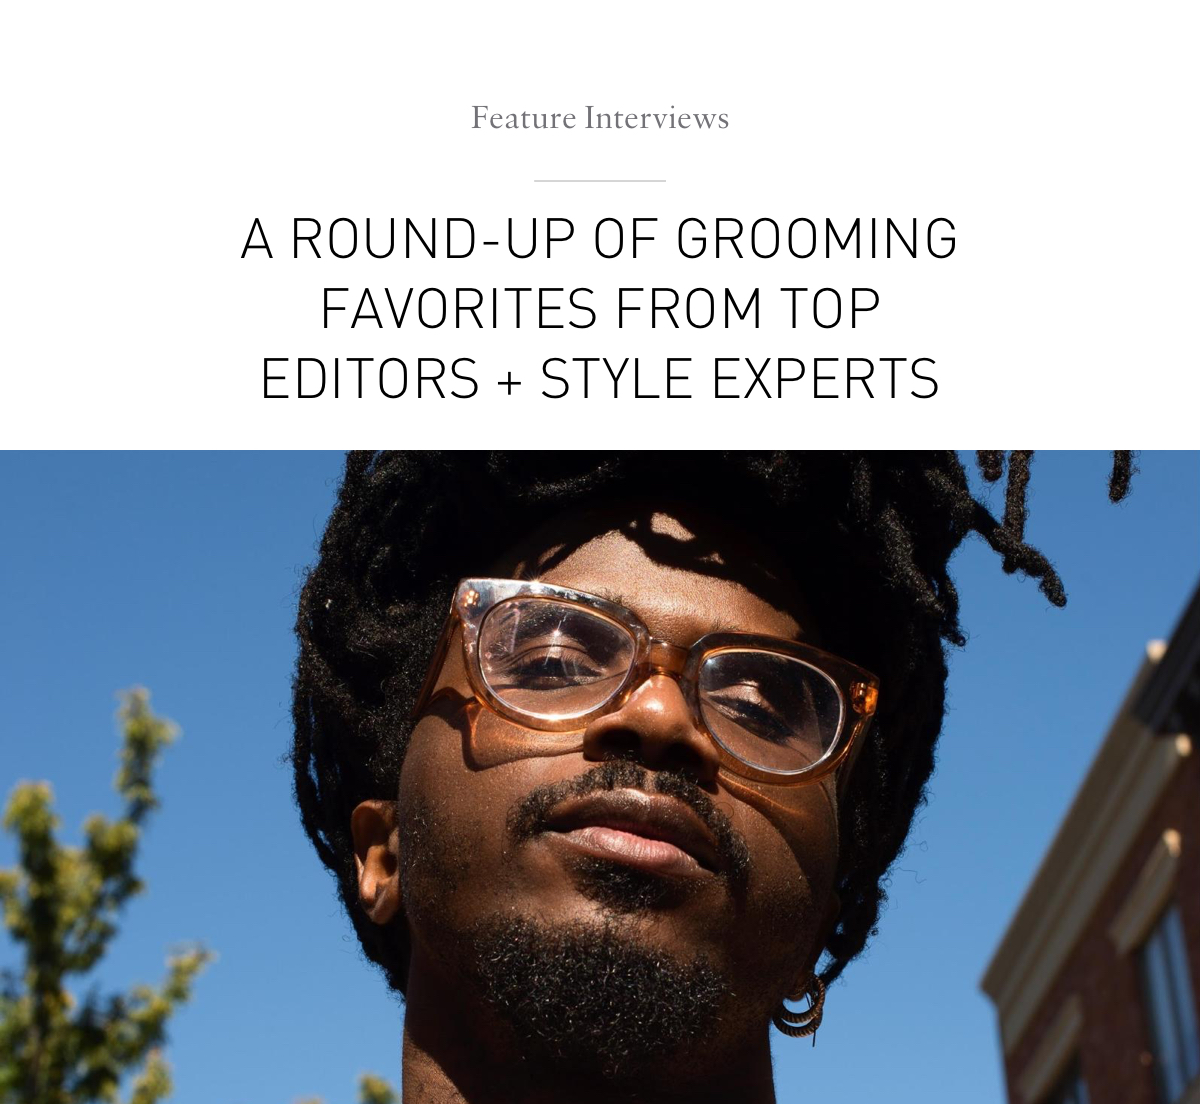 Feature Interviews: Top Editors + Style Experts